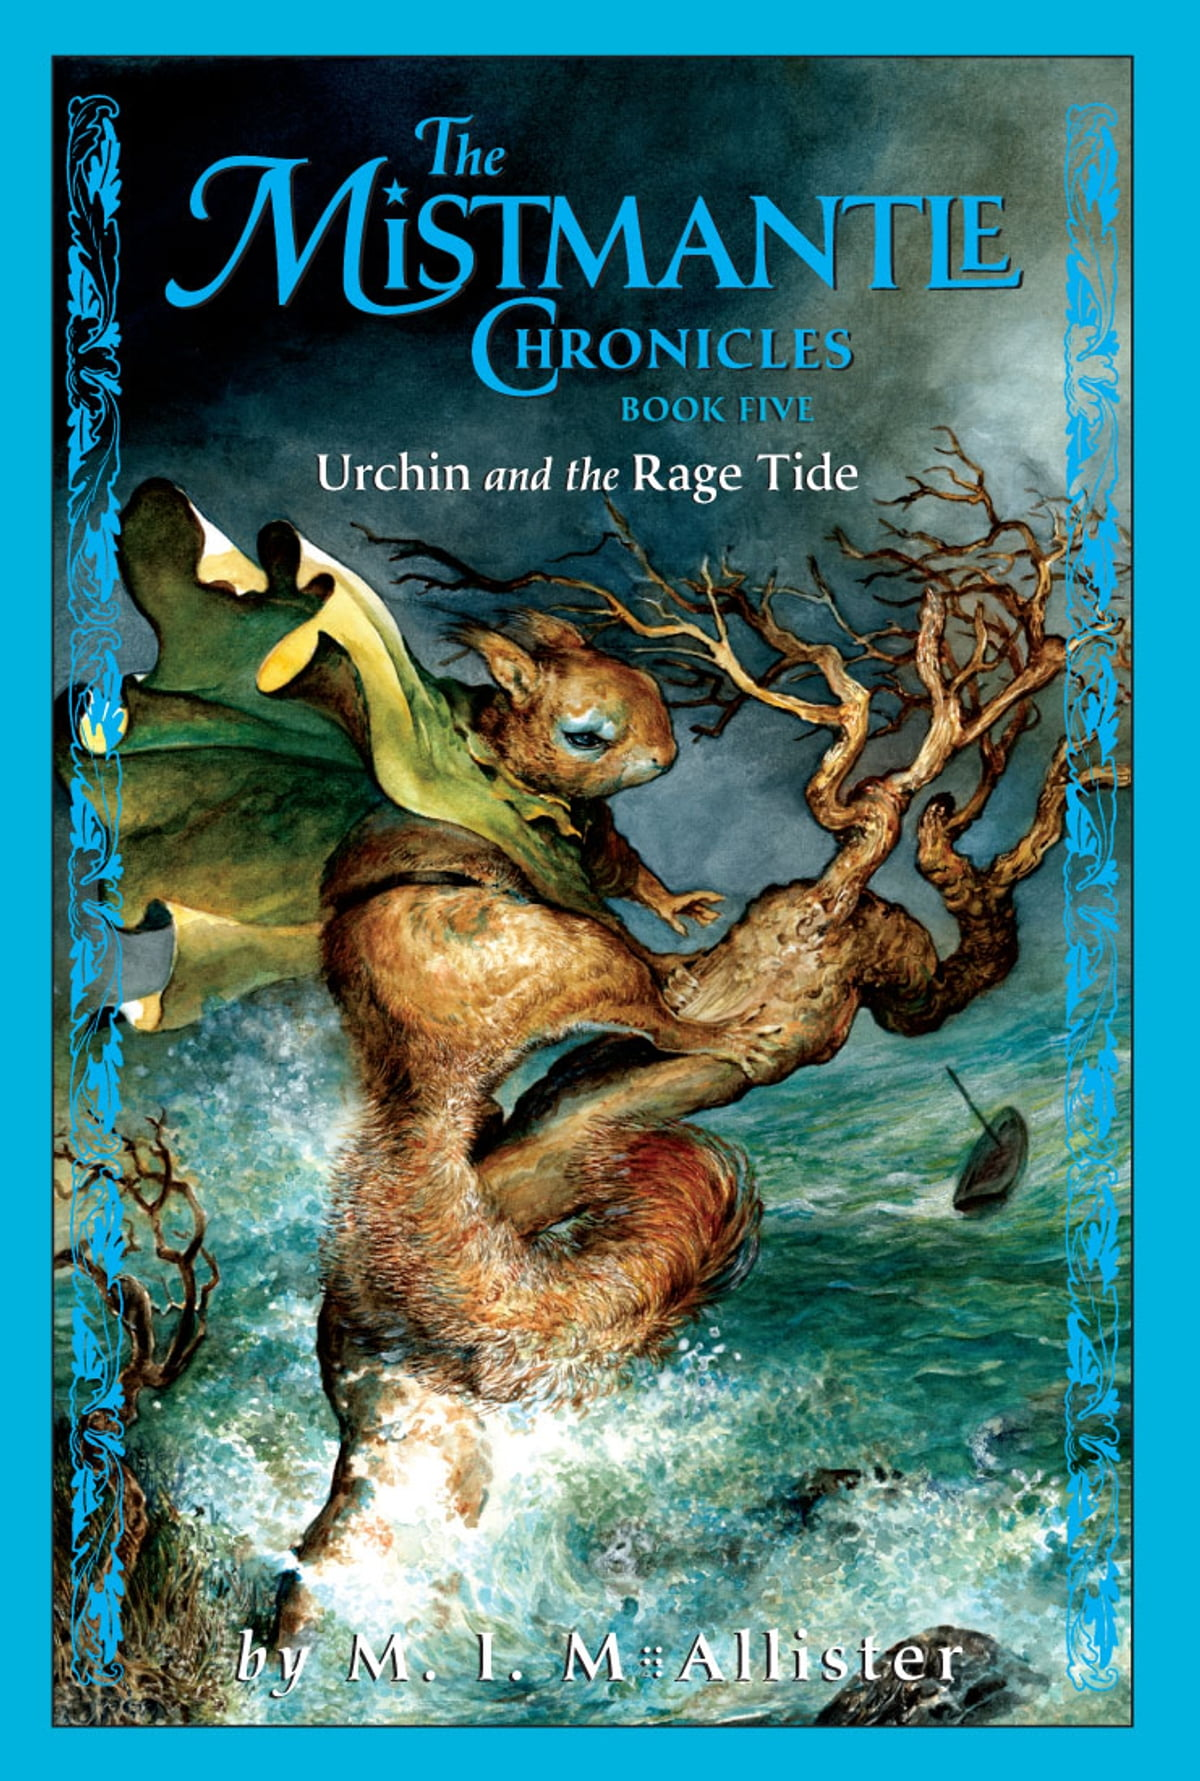 The Mistmantle Chronicles, Book Five: Urchin And The Rage Tide Ebook By  Mi Mcallister  9781423156253  Rakuten Kobo